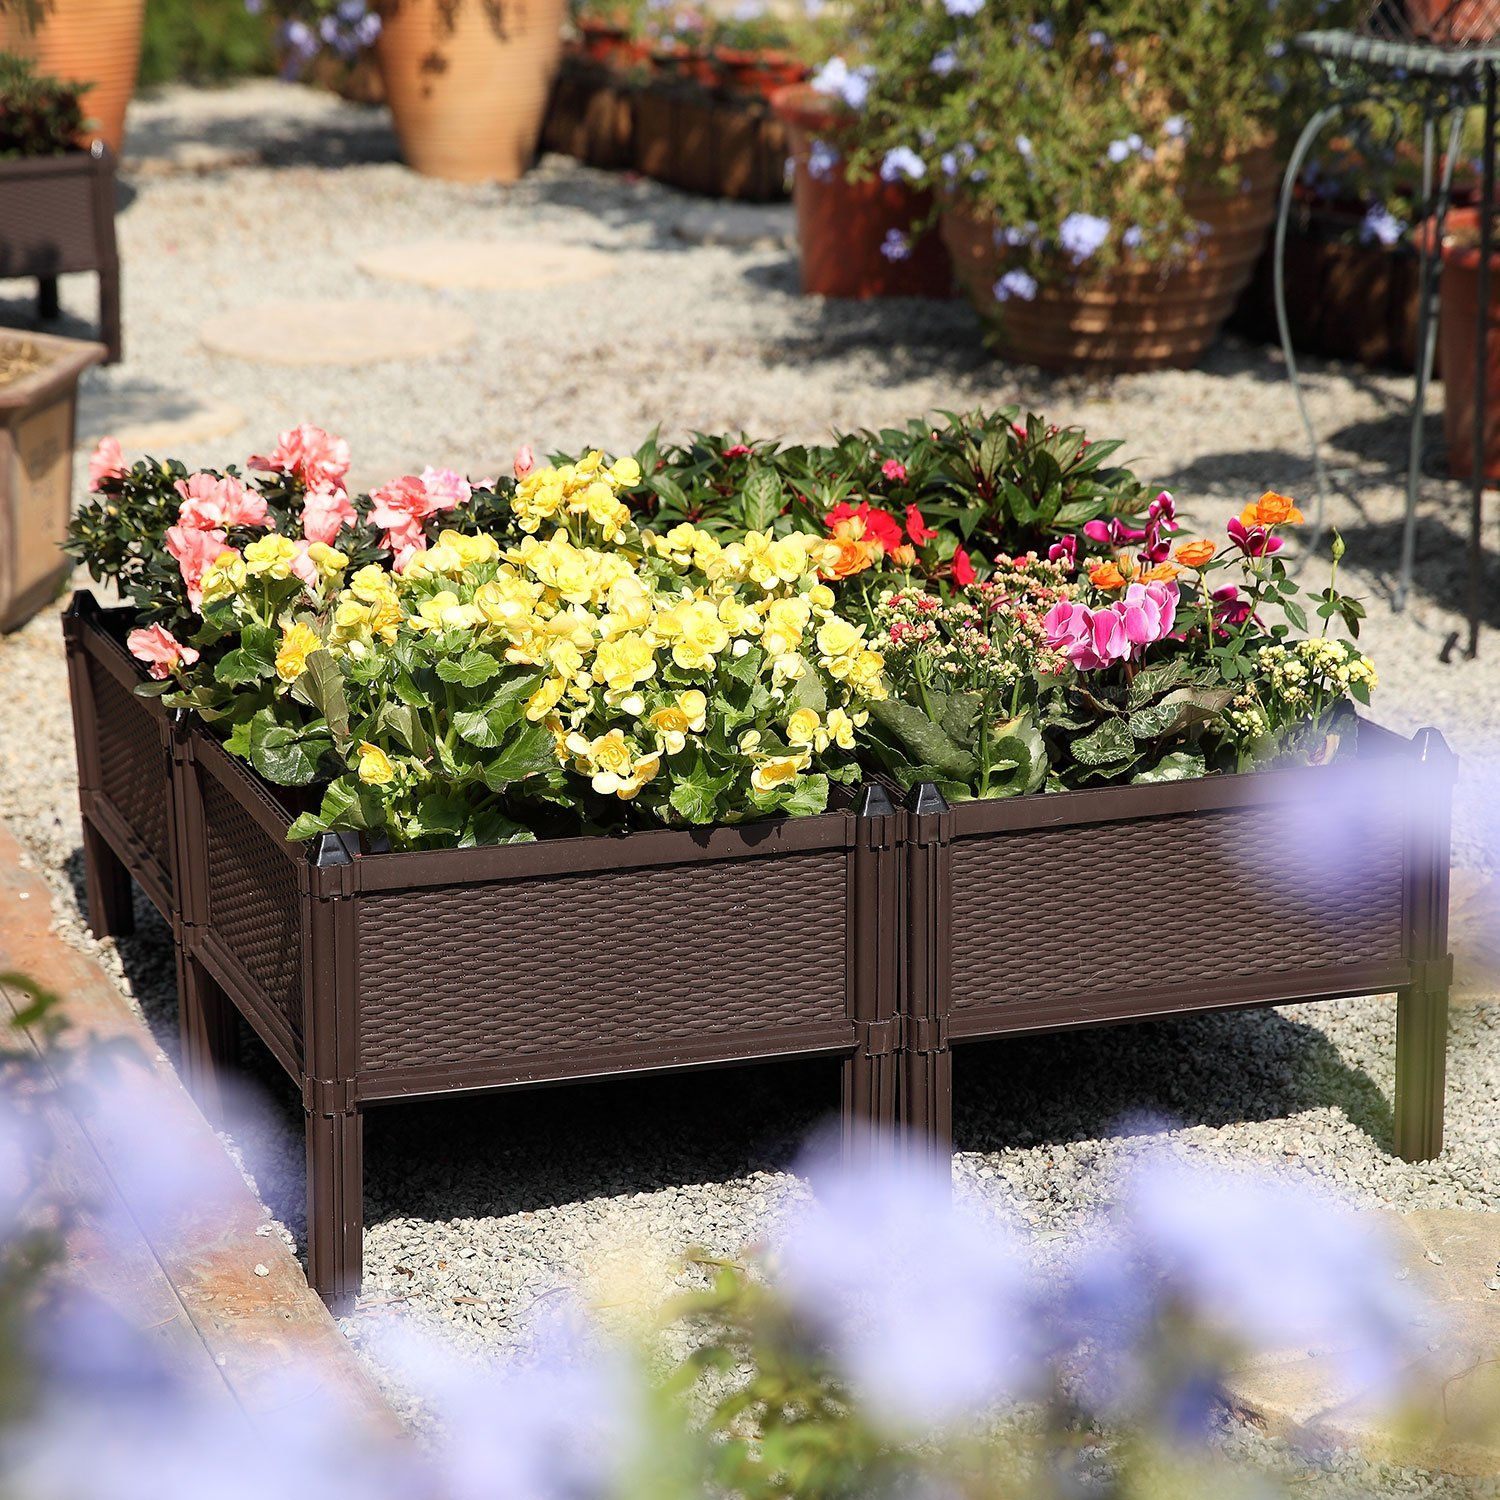 T4u Plastic Raised Garden Bed Brown Set Of 4 Assemble Elevated